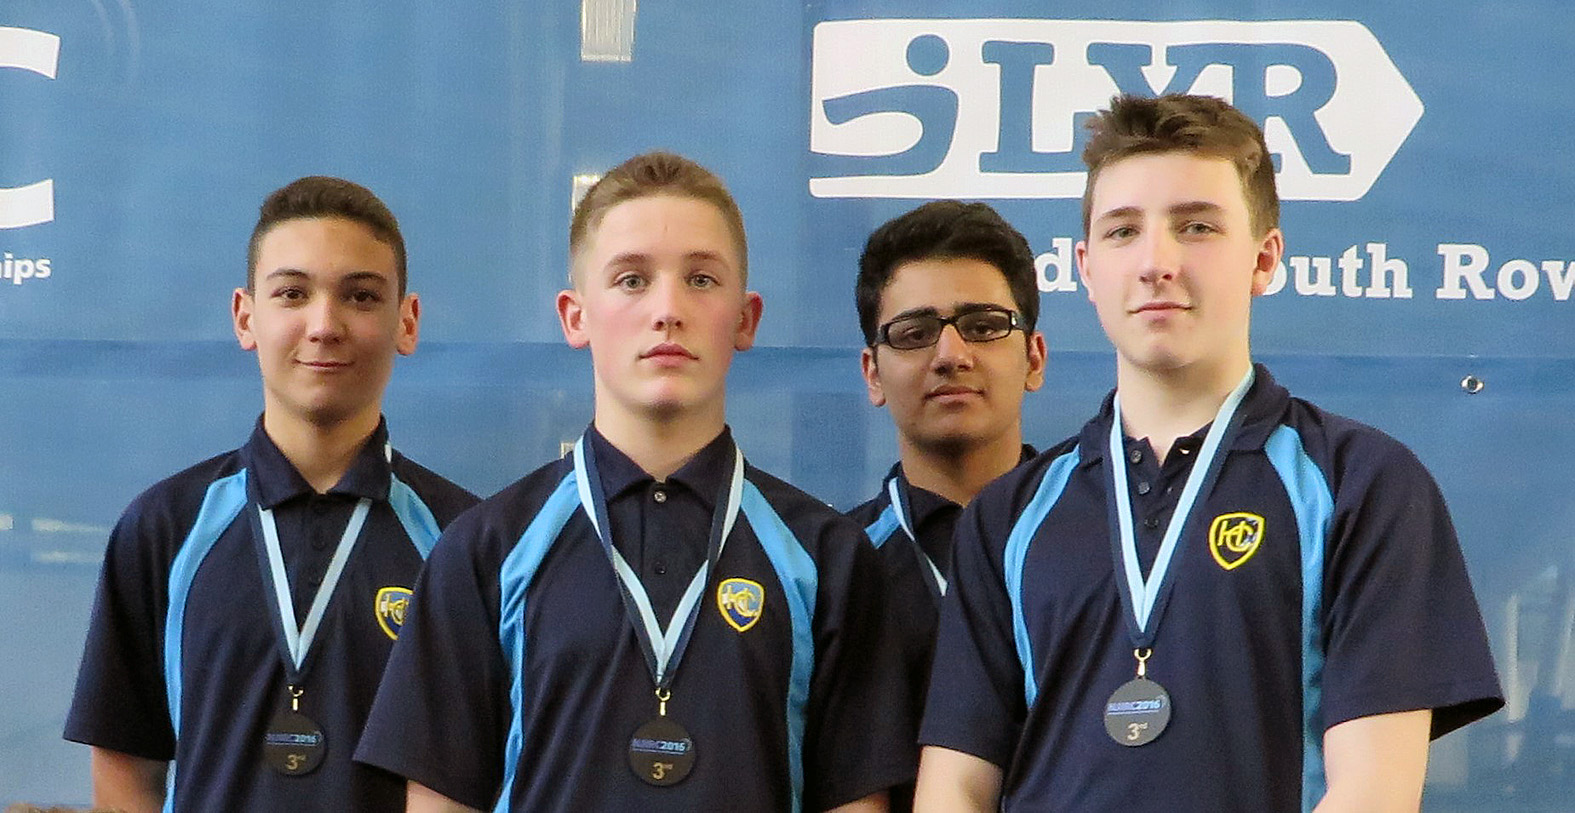 The Harewood indoor rowers who took bronze in the National Junior Indoor Rowing championships. From left to right: Reiss White, Bradley Weller, Mohammad Farooq, Sam Hassell